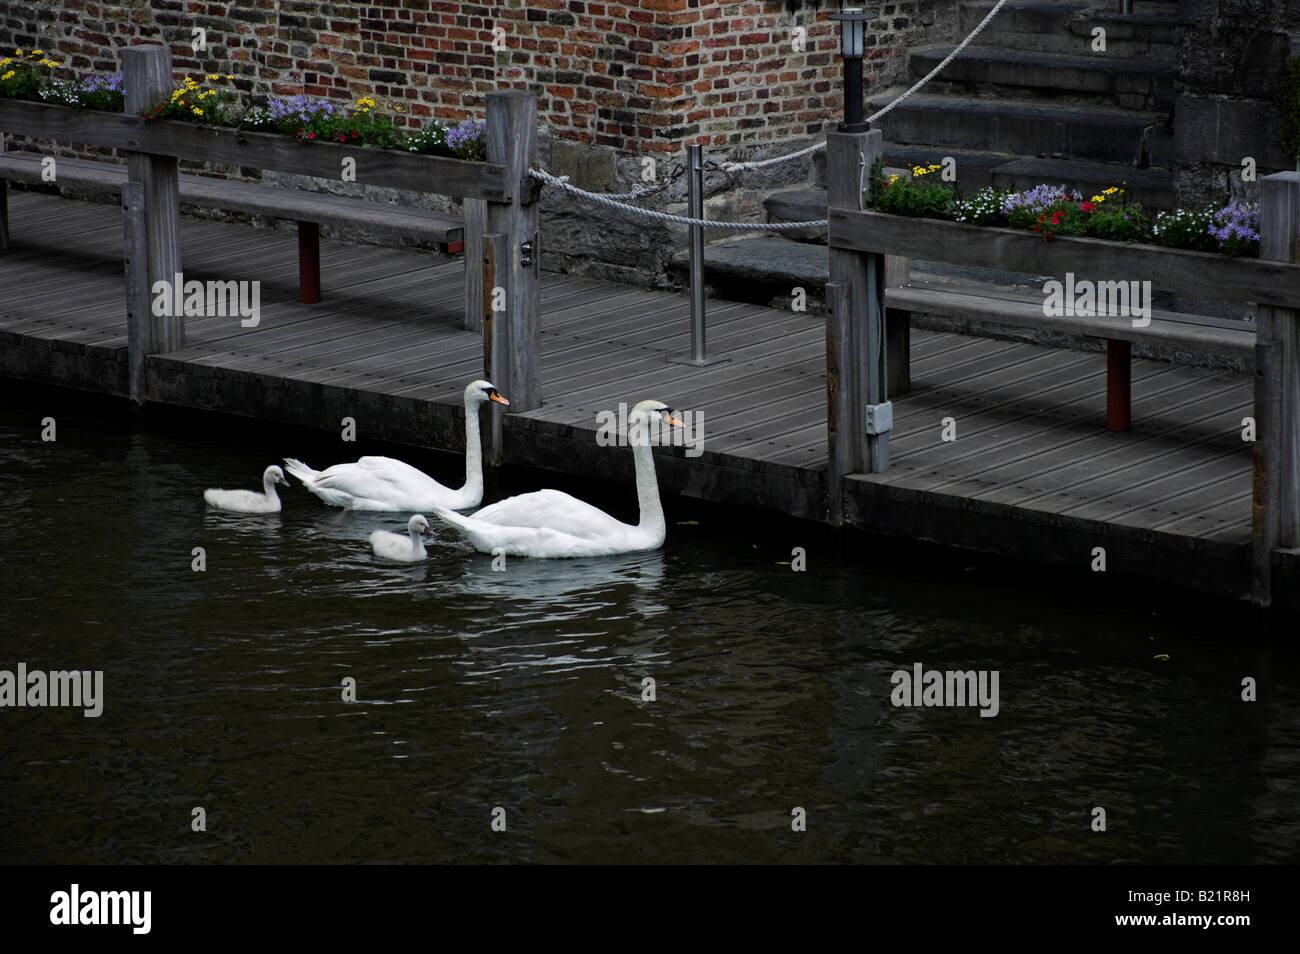 Two adult swans and cygnets on canal, Bruges, Brugge, Flanders, Belgium, Europe Stock Photo